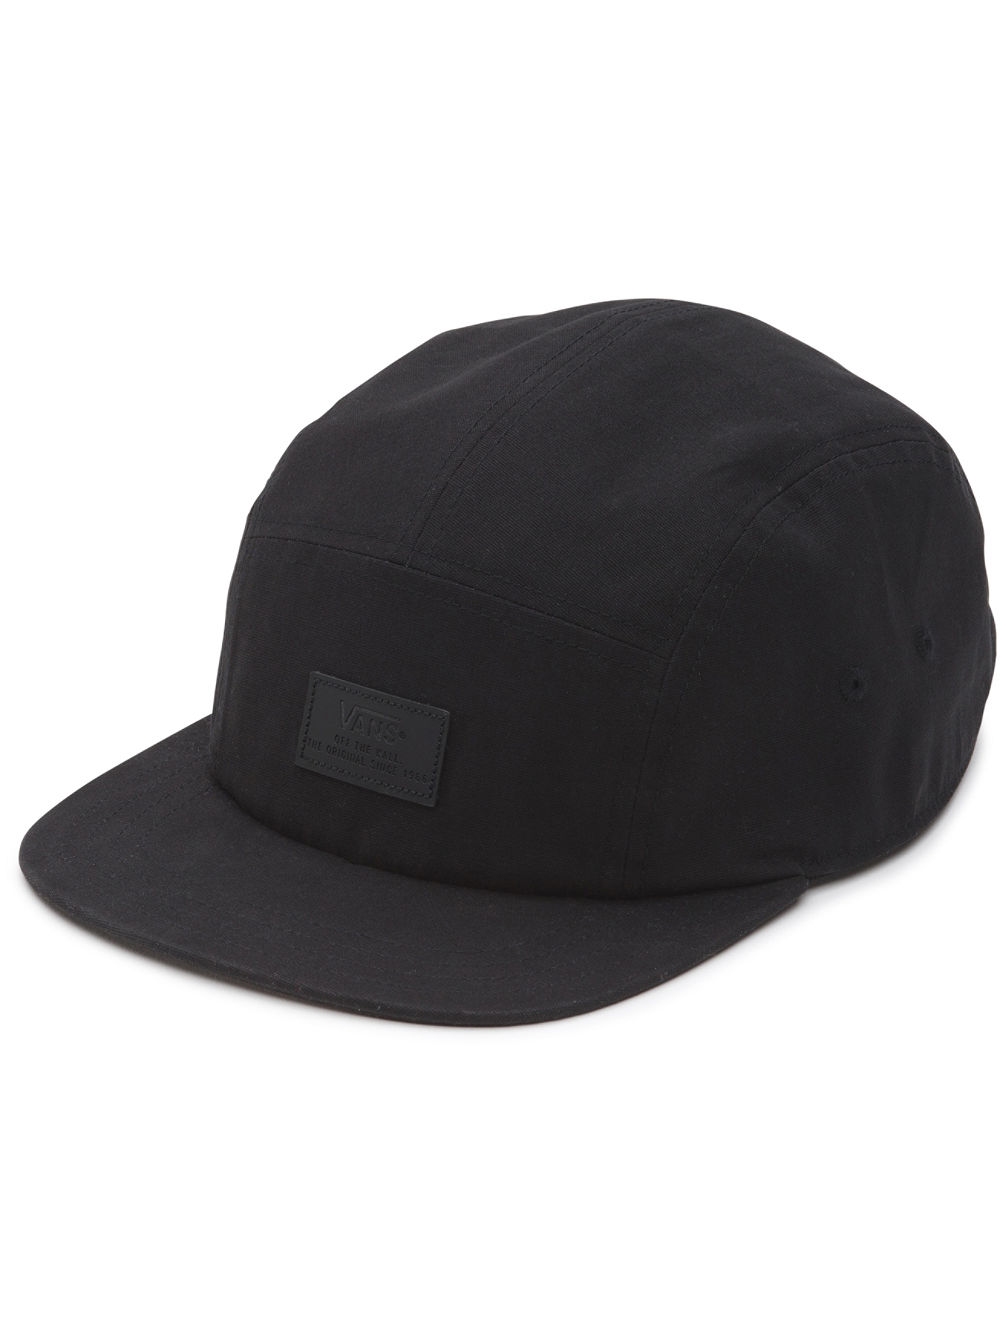 Base 5-Panel Camper Cap